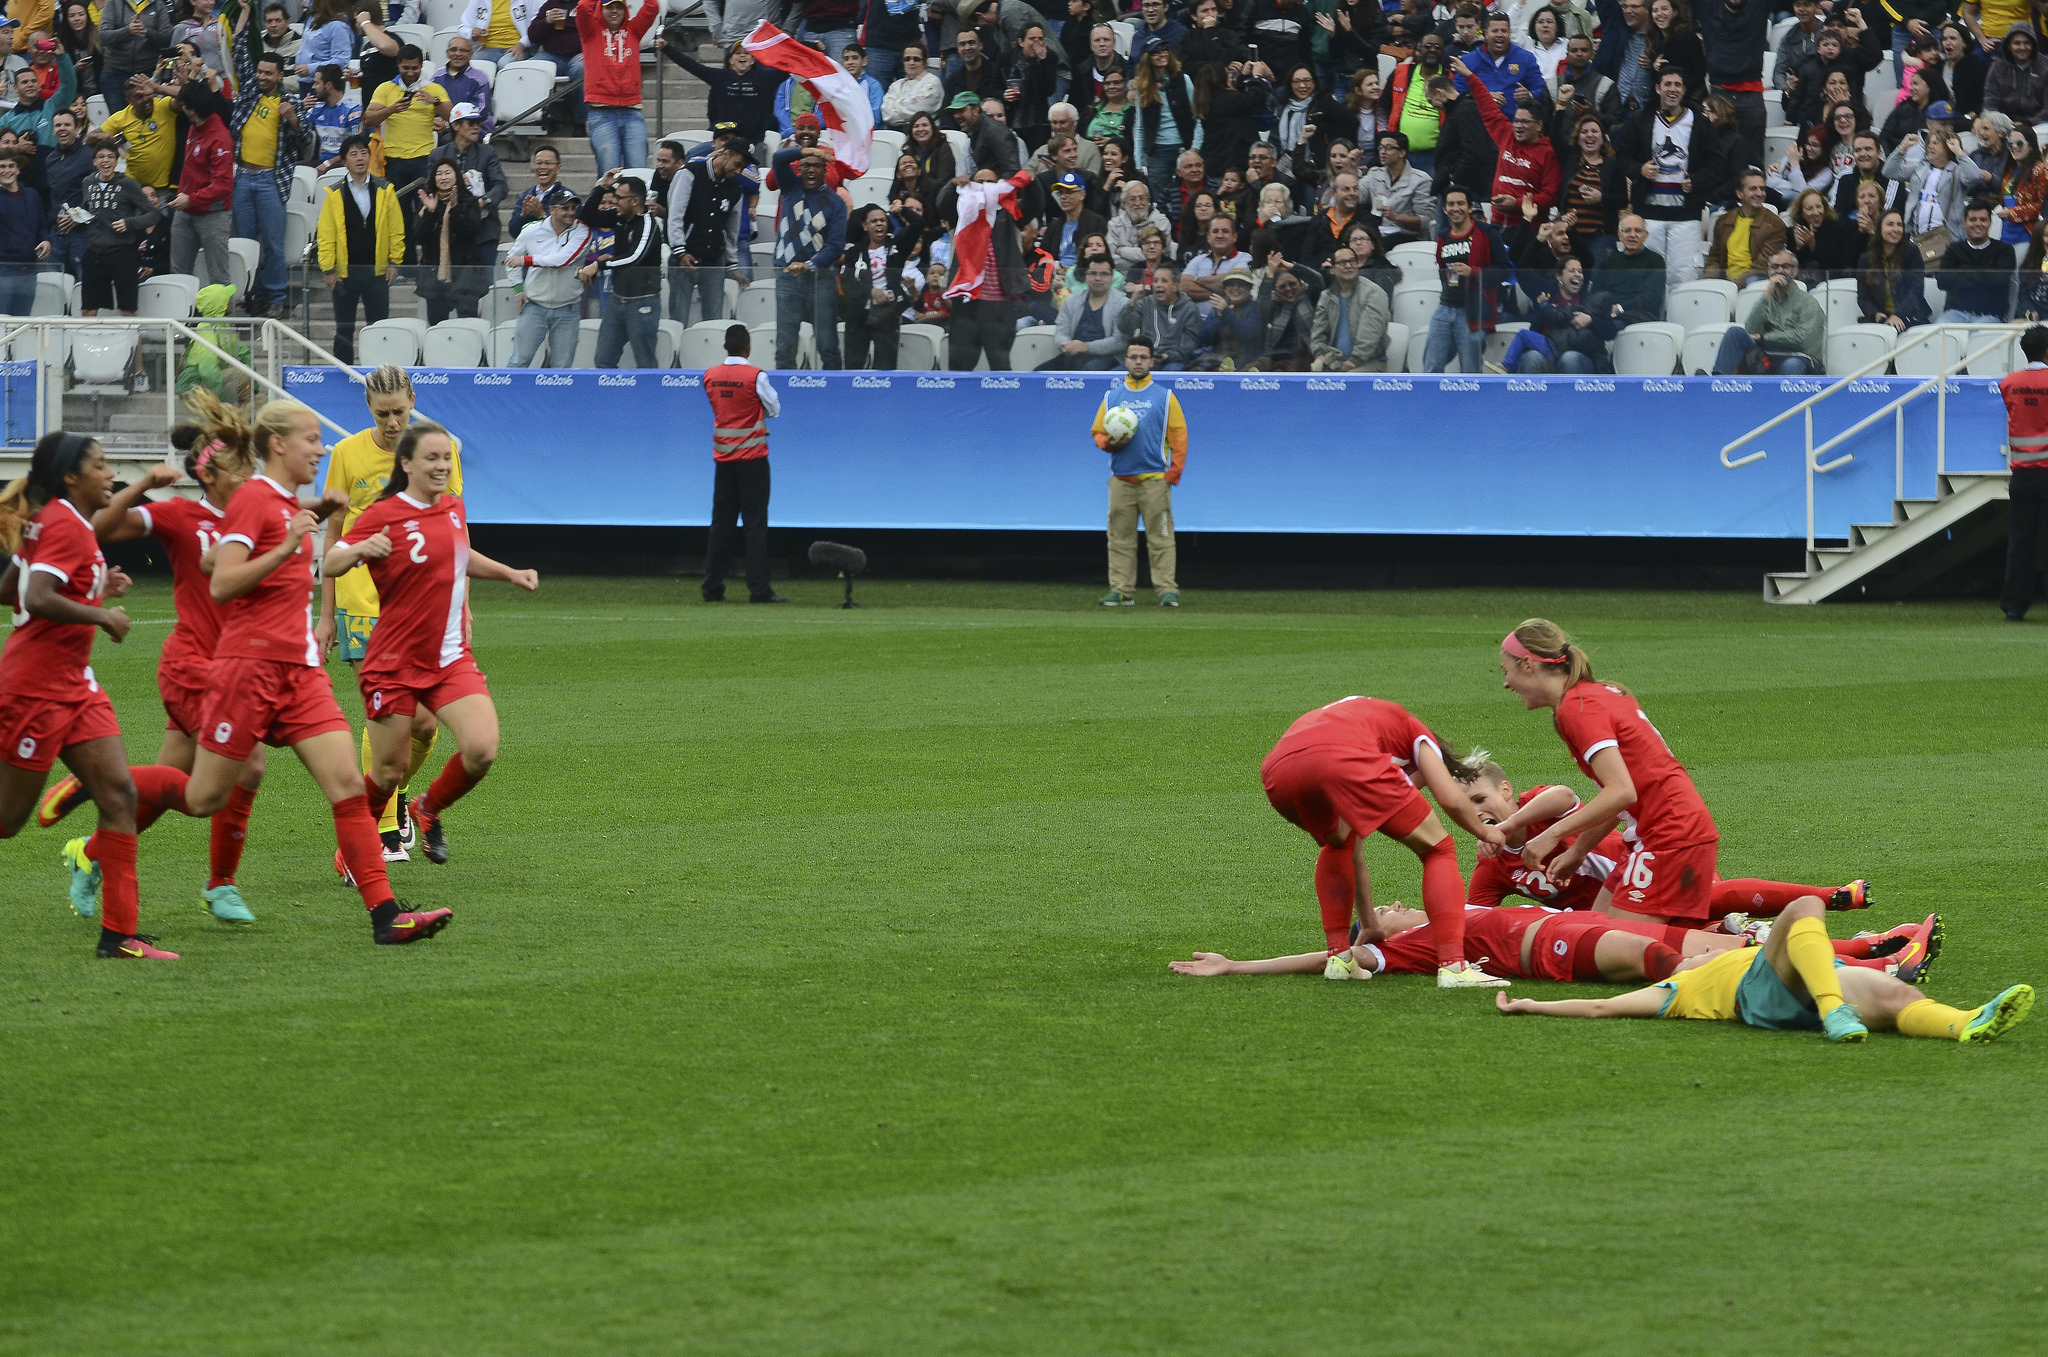 Christine Sinclair collapsed after her 80th minute goal metres from where she left Australia's Lisa De Vanna flat on the turf. (Rovena Rosa/Agência Brasil)